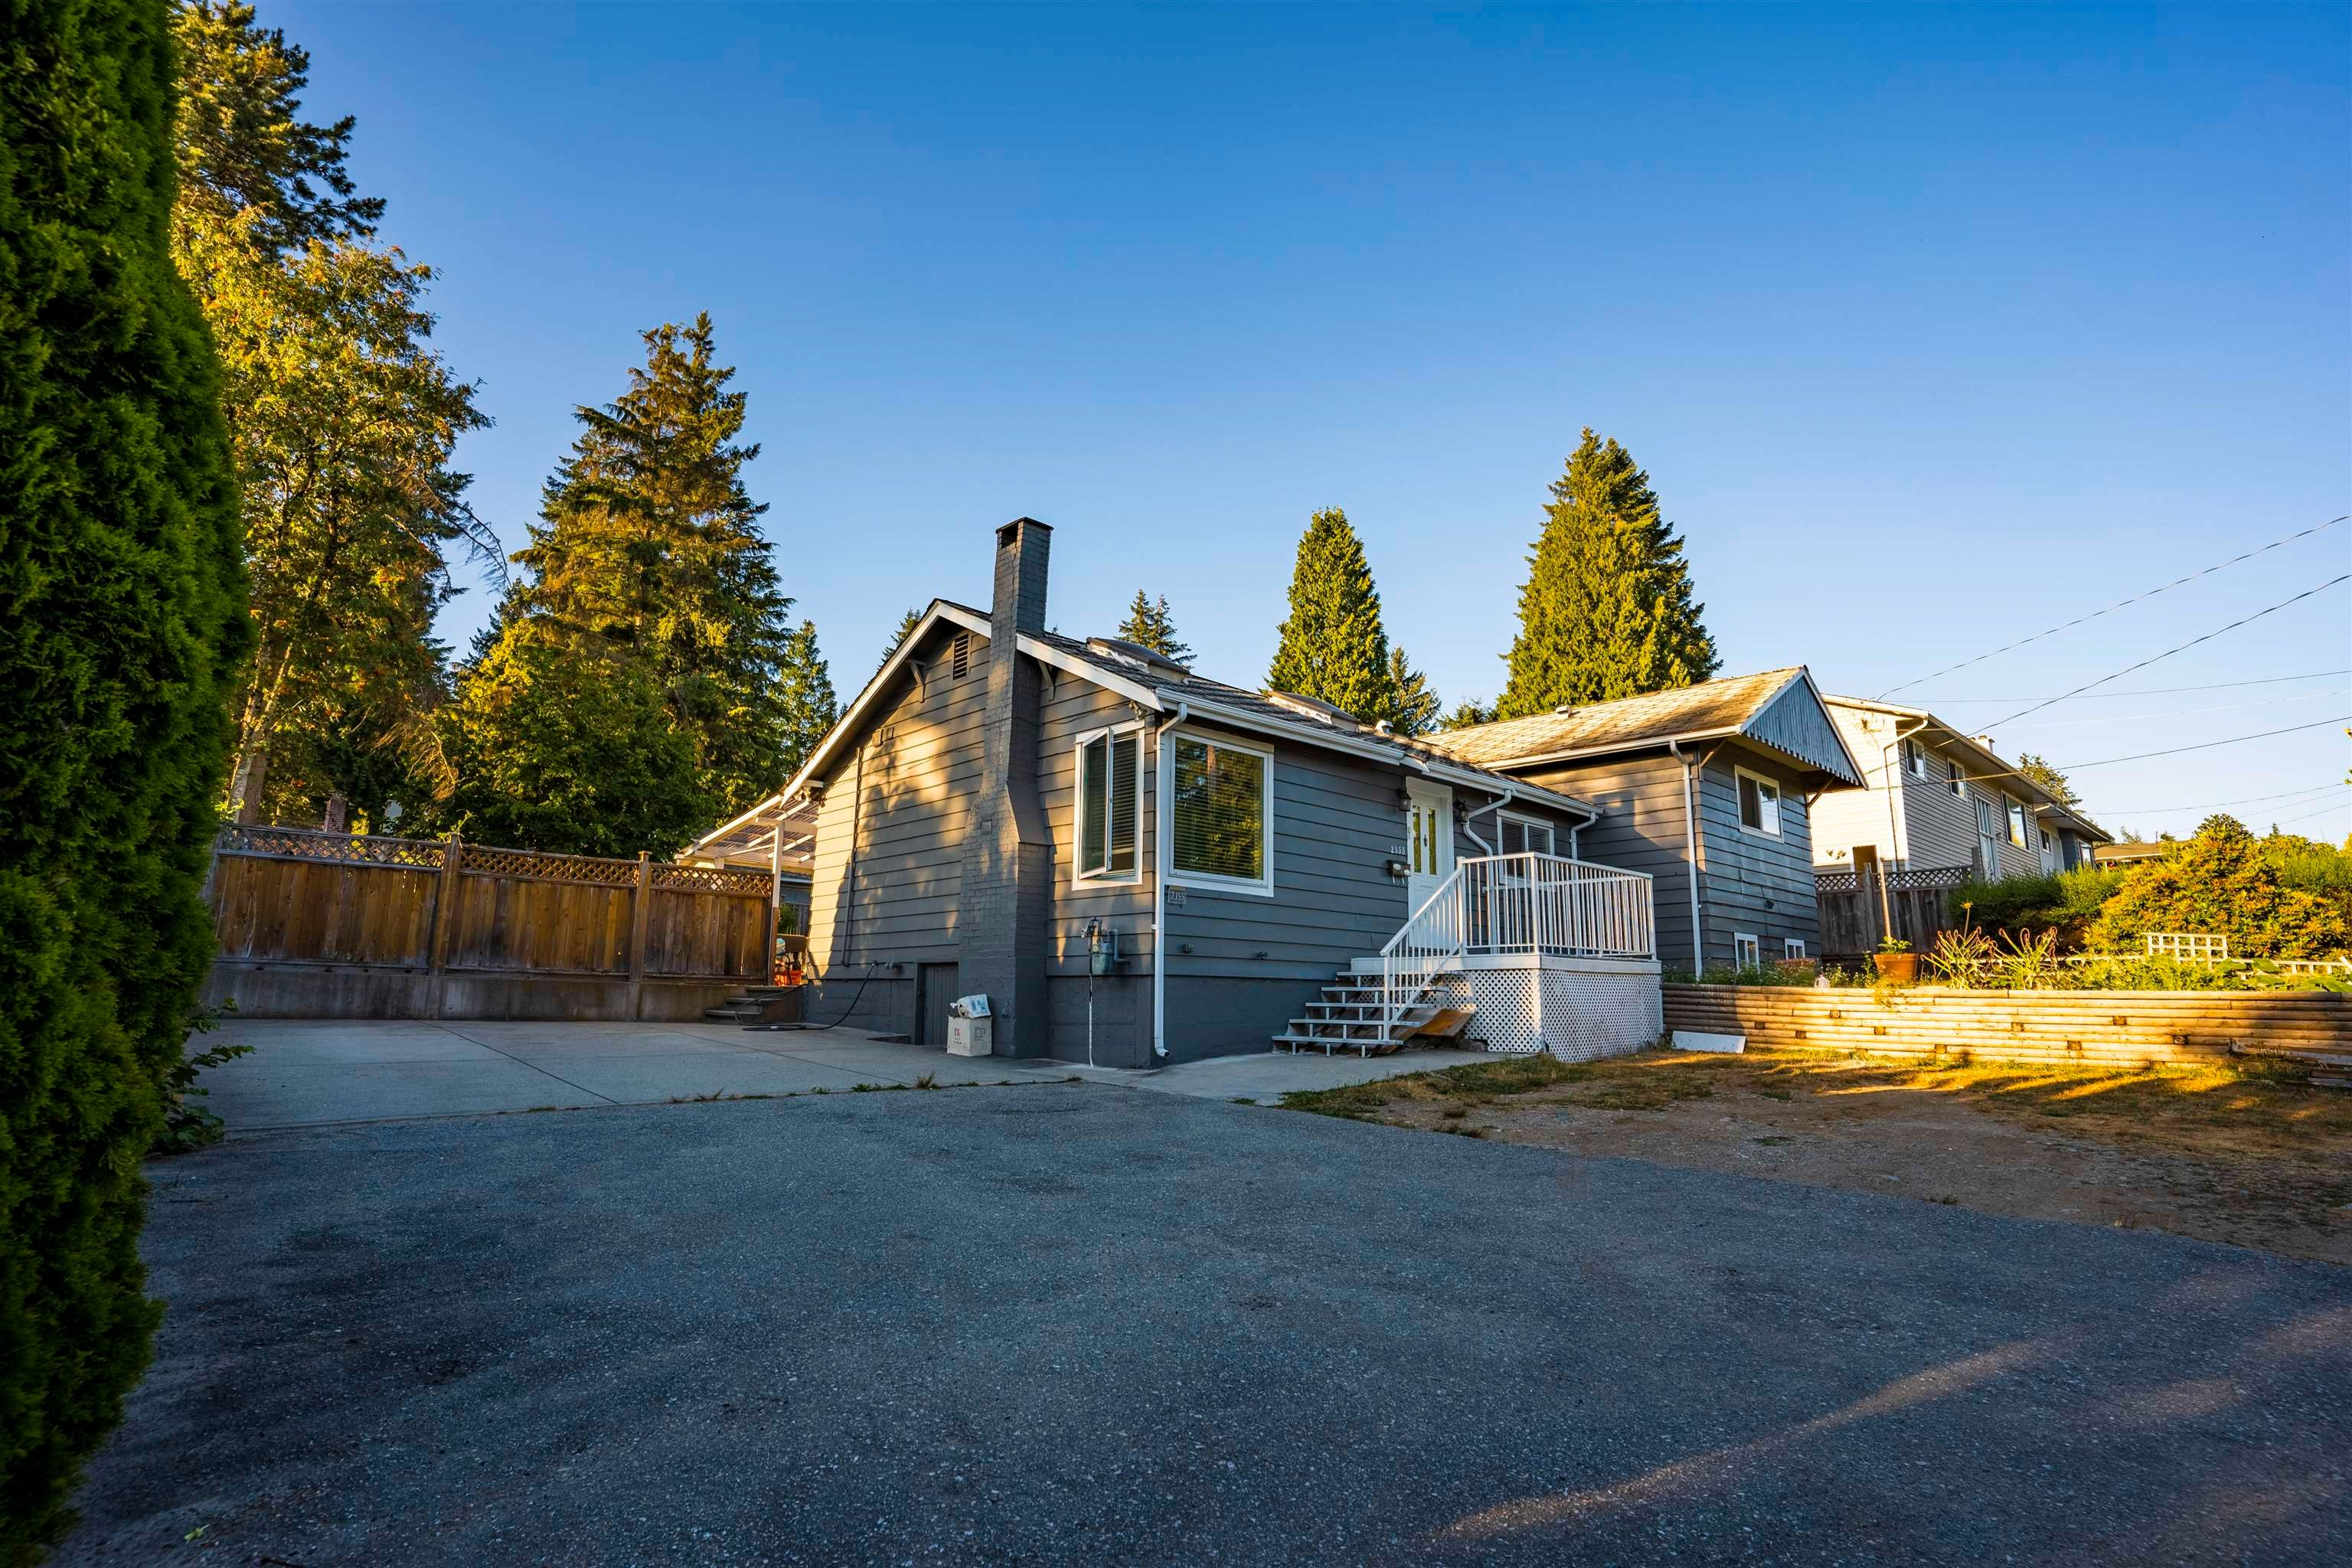 Main Photo: 2355 AUSTIN Avenue in Coquitlam: Central Coquitlam House for sale : MLS®# R2620718